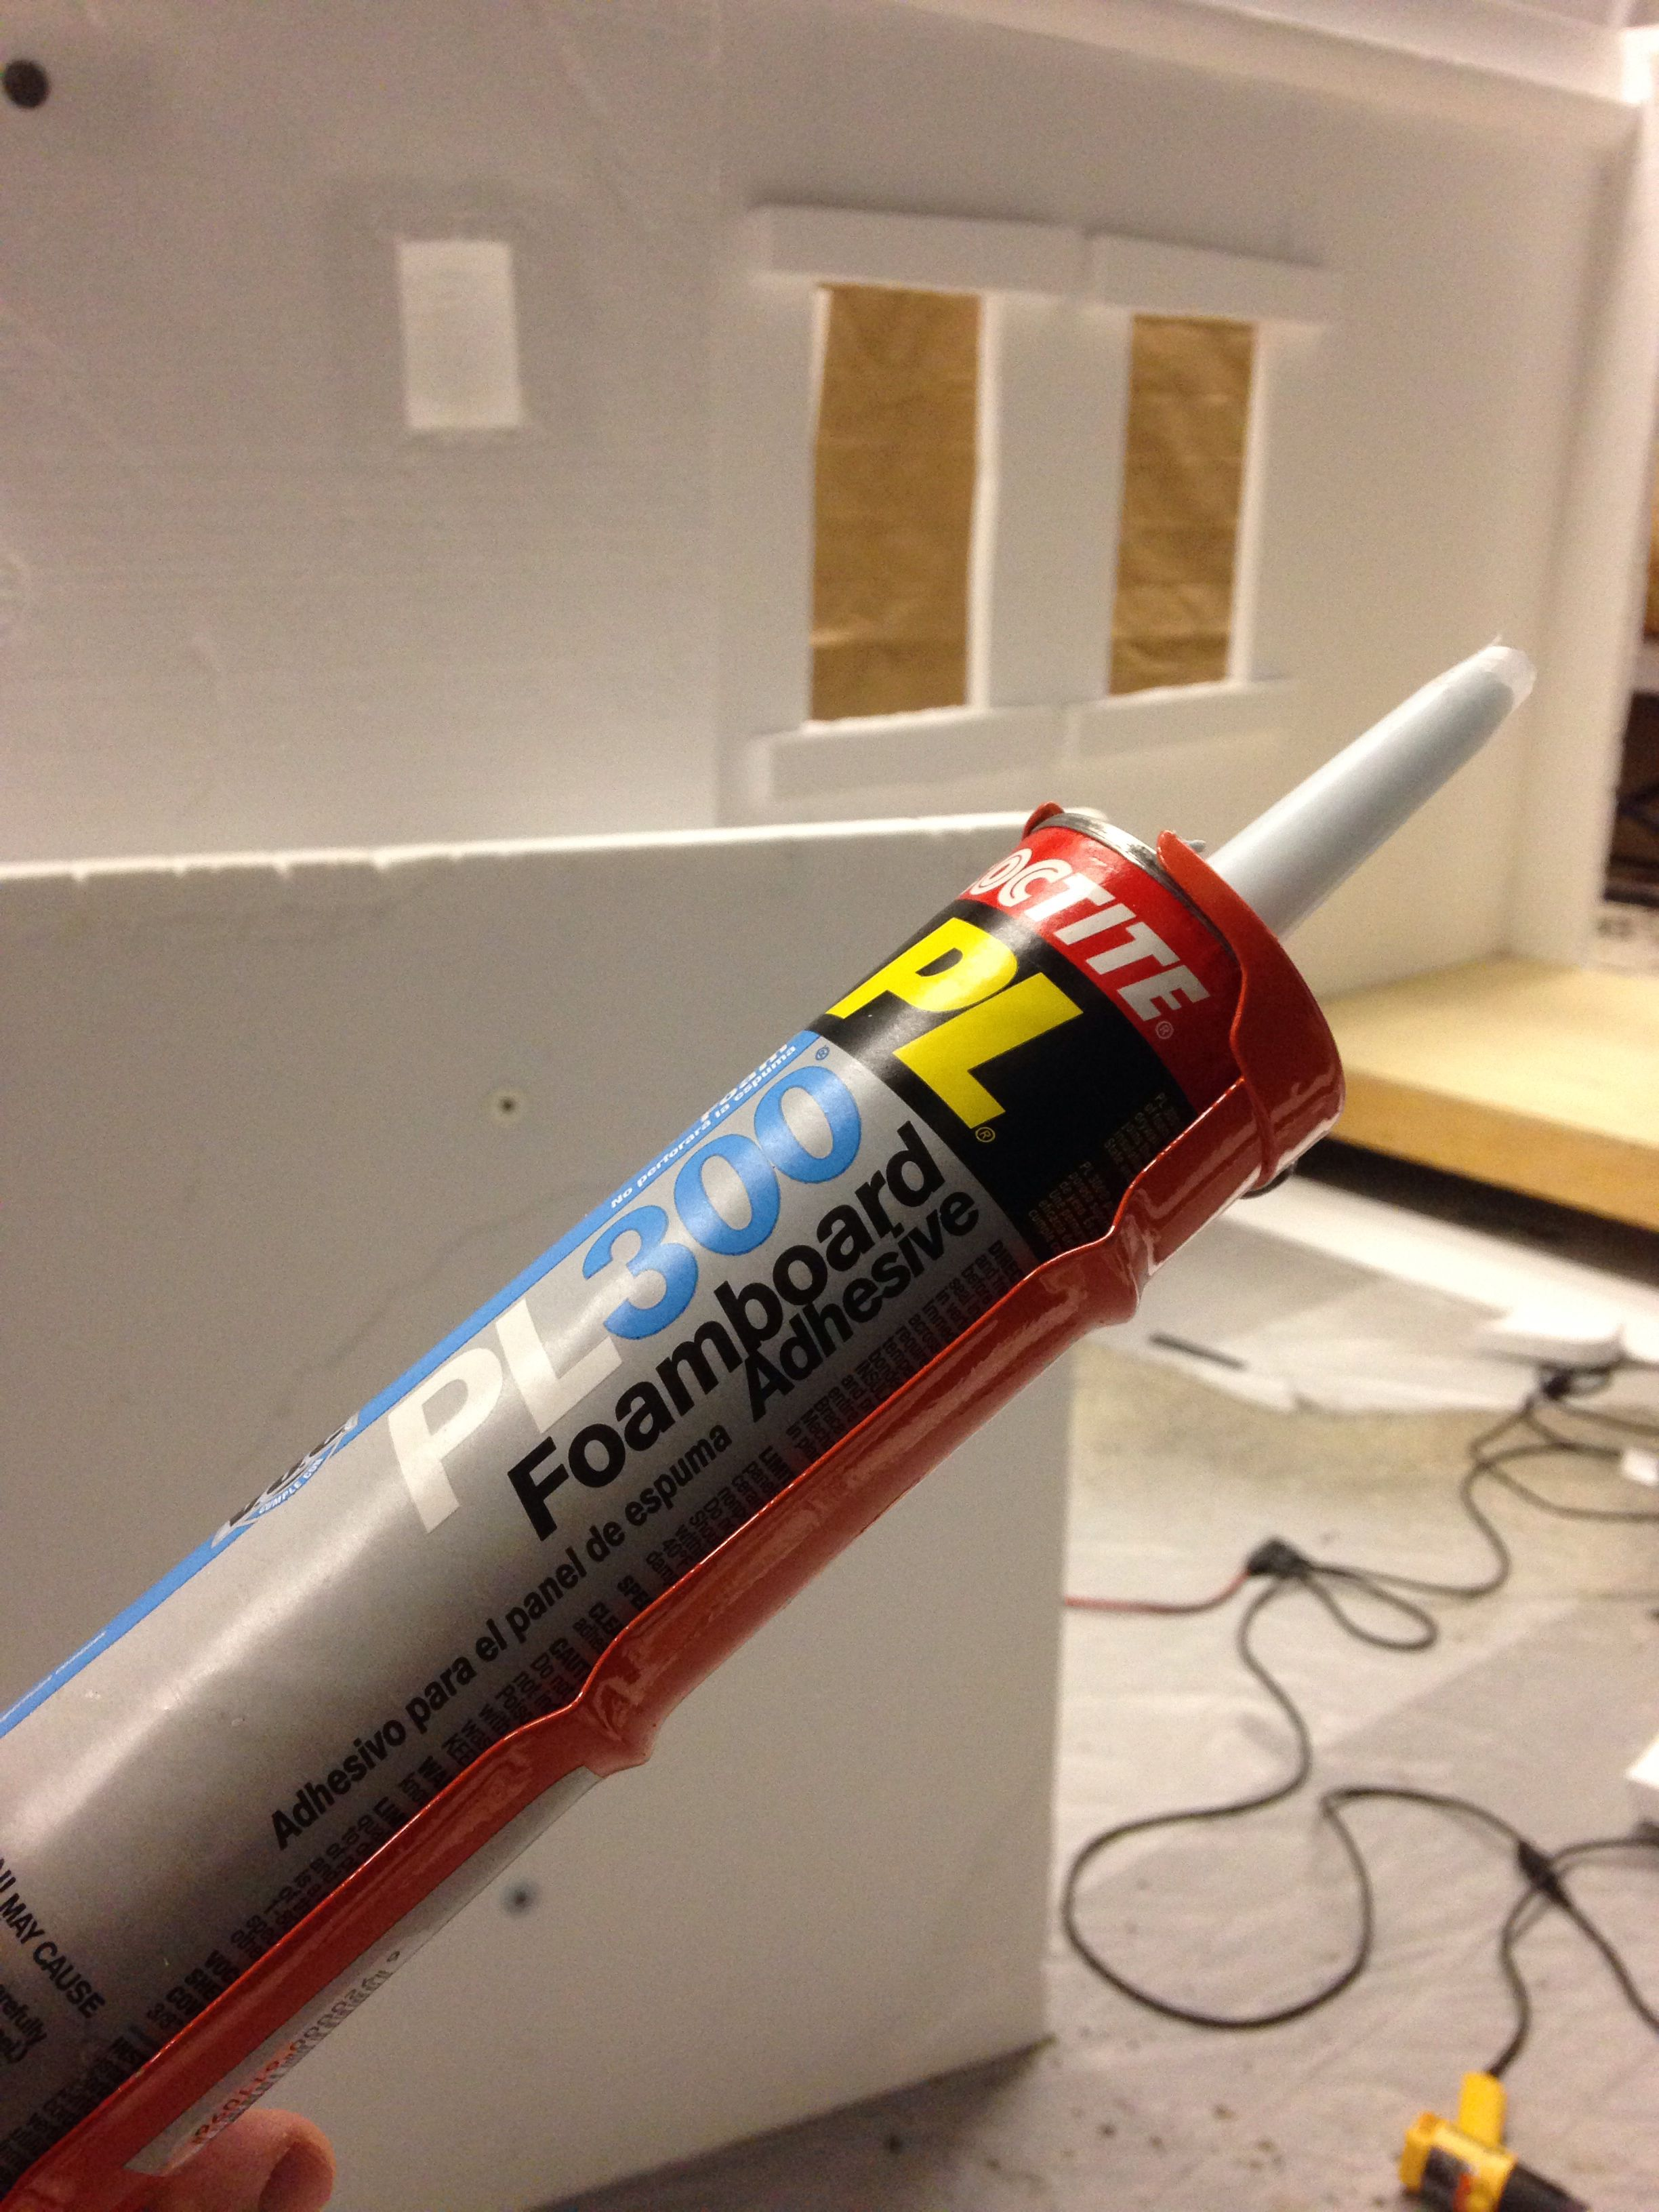 This stuff is indispensable when carving foam sets. my secret weapon